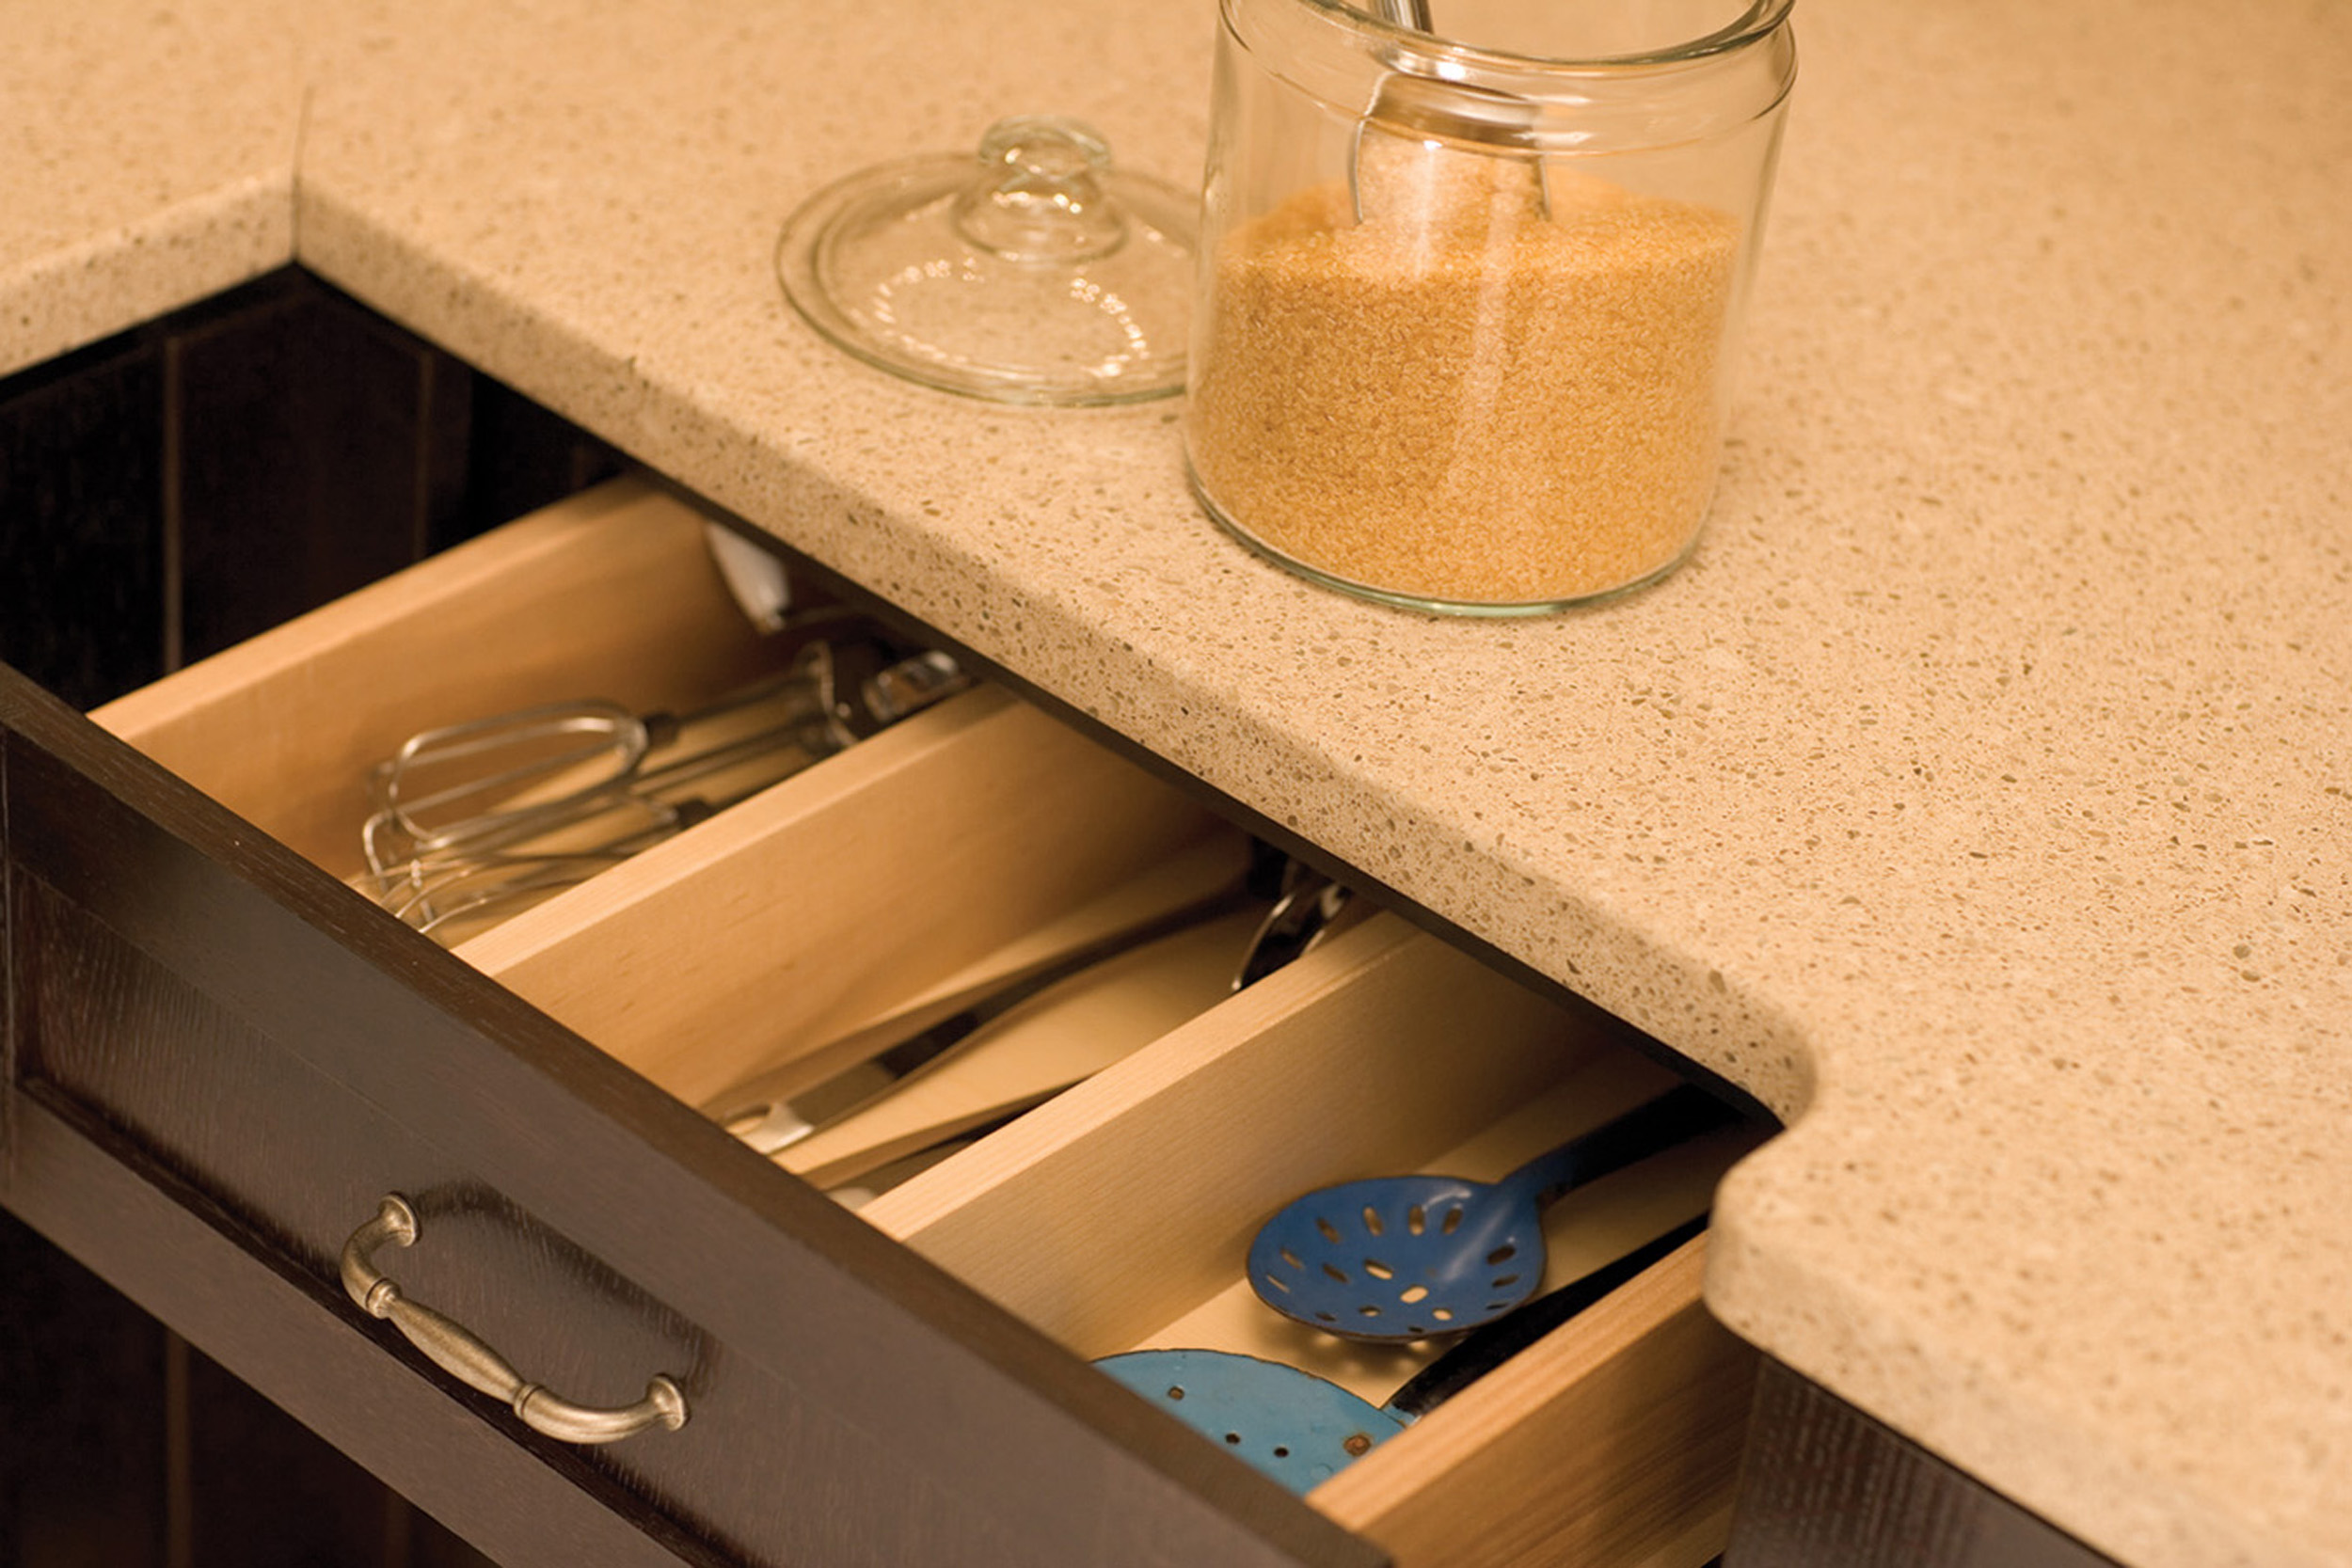 Drawer partitions can be specified to divide a drawer based on your personal preferences. Kitchen Drawer Storage from Dura Supreme Cabinetry.